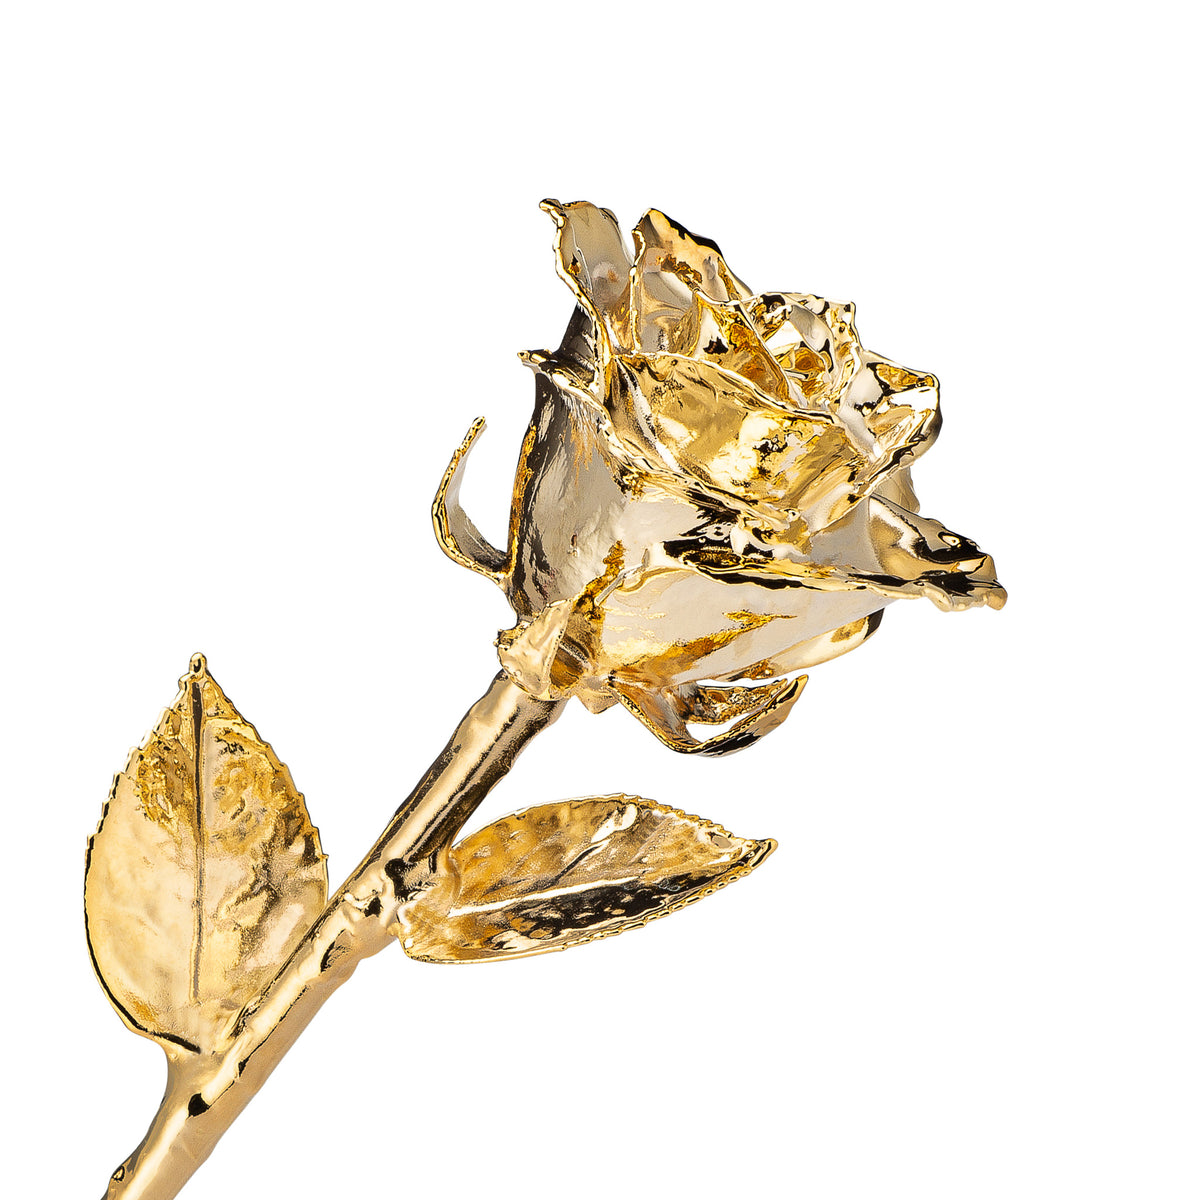 Real 24K Gold Forever Rose. Rose is fully dipped in gold. View shows the rose petals, sepals, stem, and leaves covered in 24 karat gold.